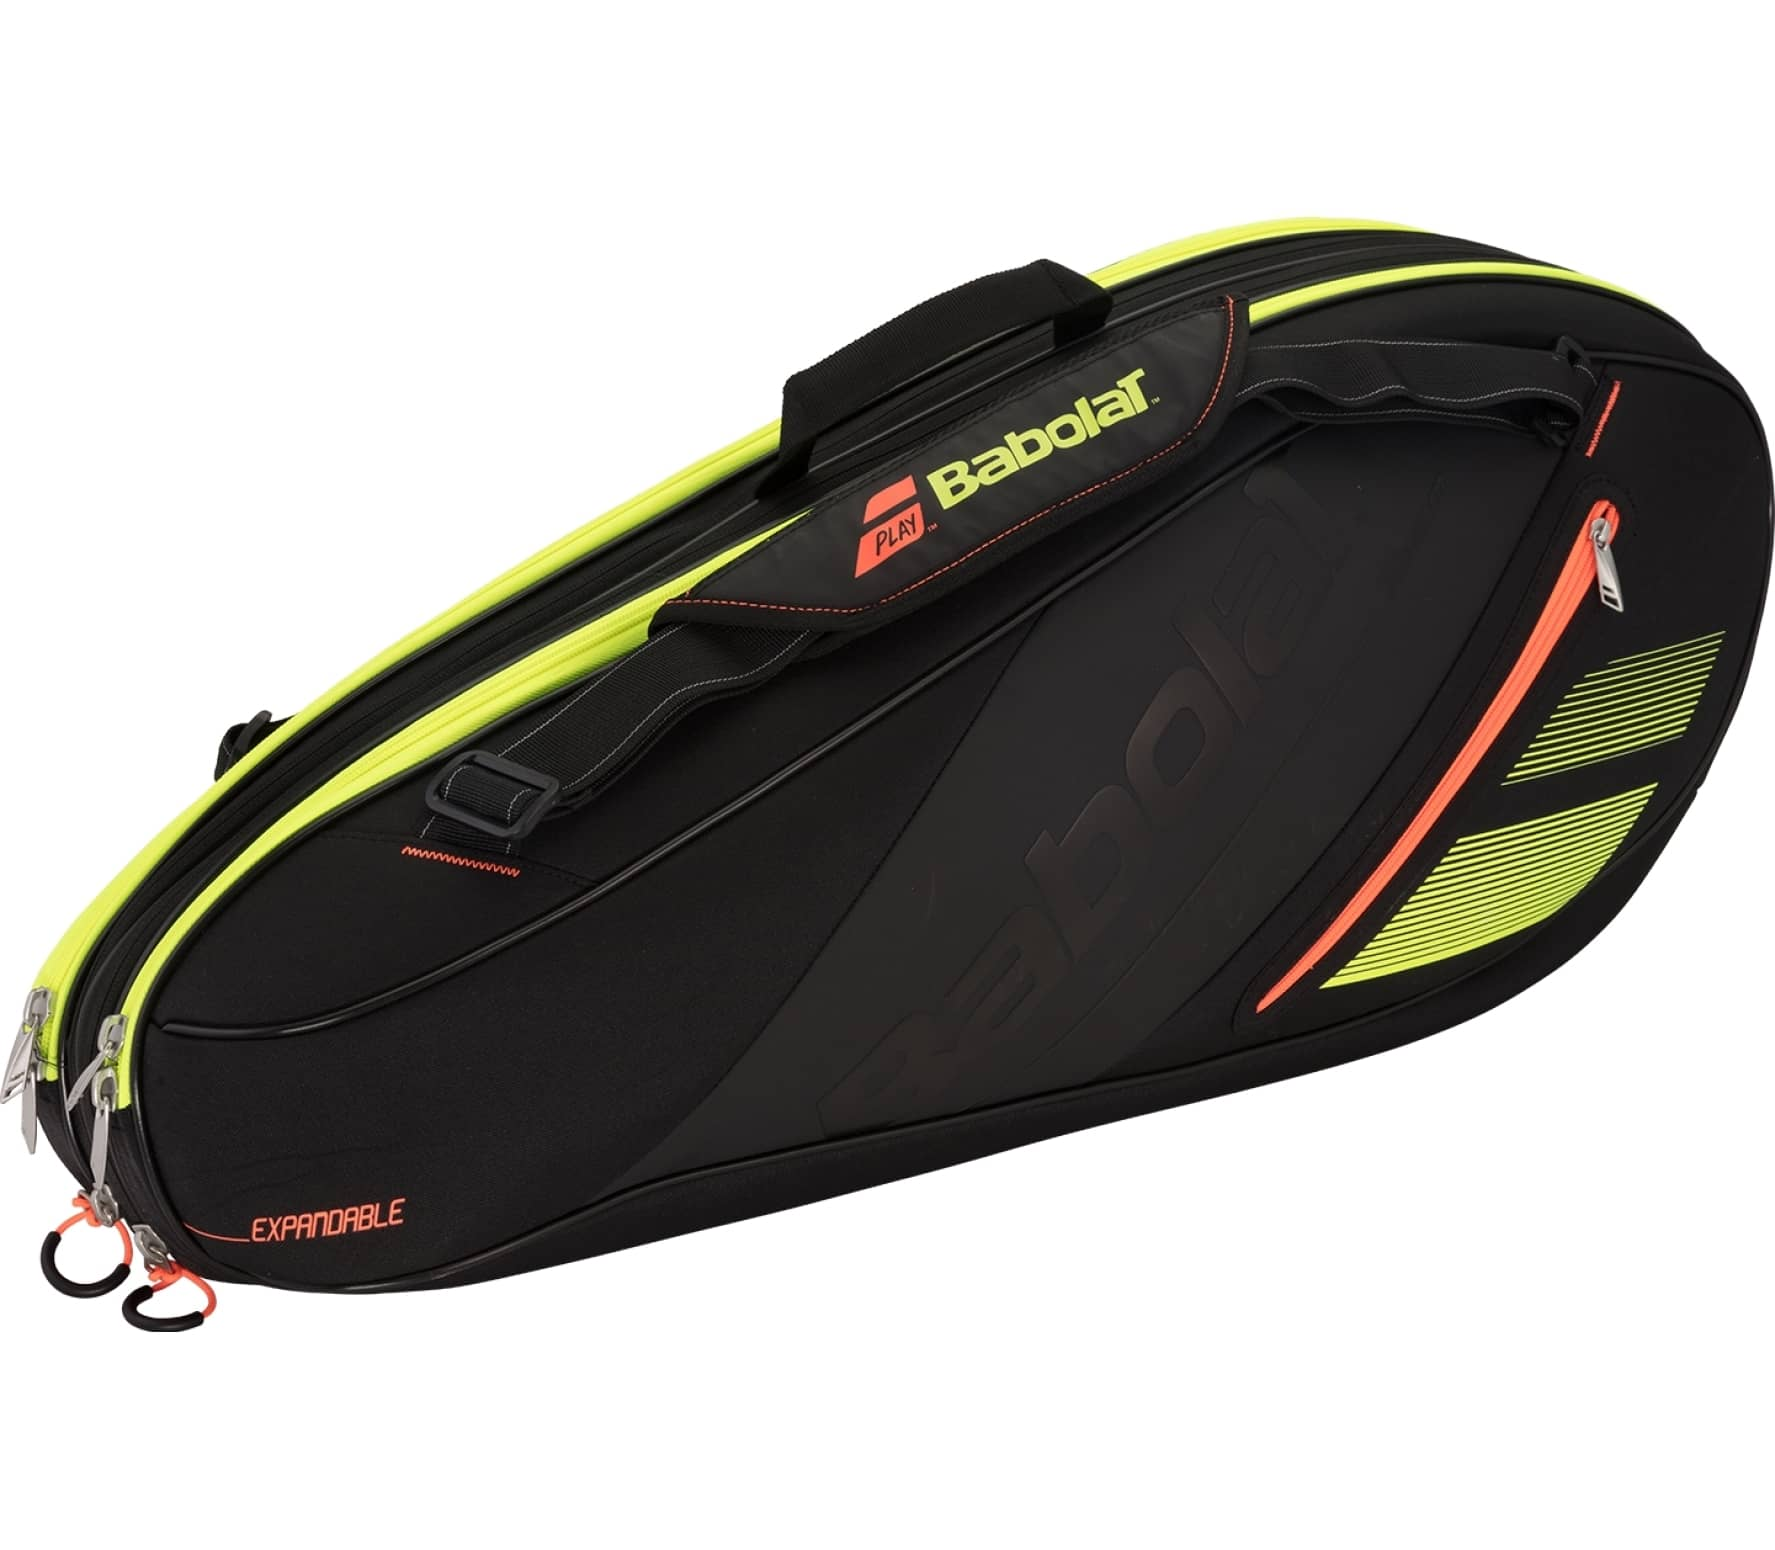 Babolat - Racket Holder X6 Expandable tennis bag (multi-coloured)